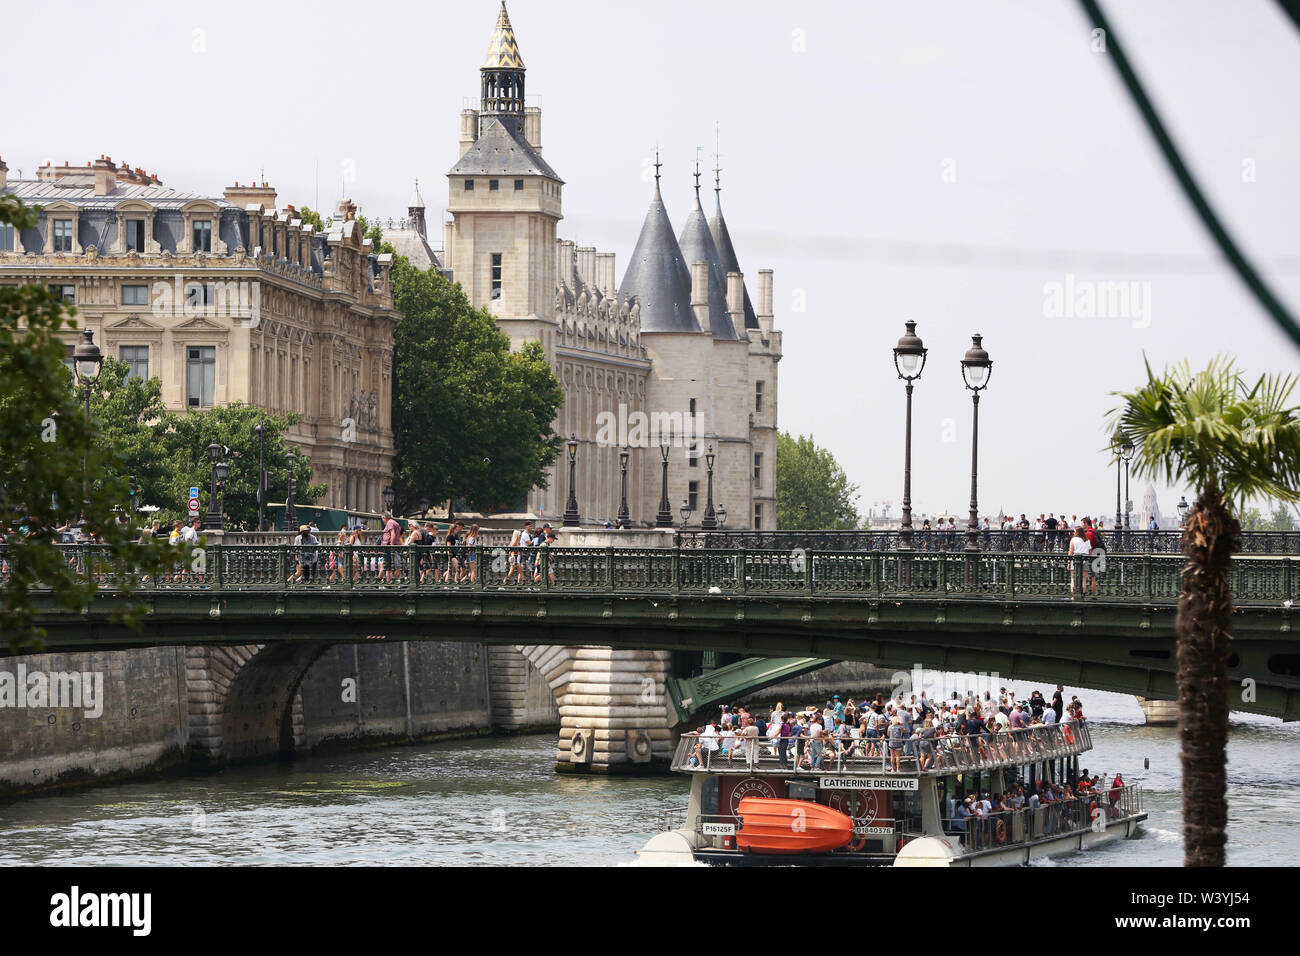 (190718) -- PARIS, July 18, 2019 (Xinhua) -- A Bateaux Mouches (Seine Rivers Cruises) is seen on the River Seine during the Paris Plage in Paris, France, July 17, 2019. The annual Paris Plage (Paris beach) event is held from July 6 to Sept. 1, 2019. (Xinhua/Gao Jing) Stock Photo